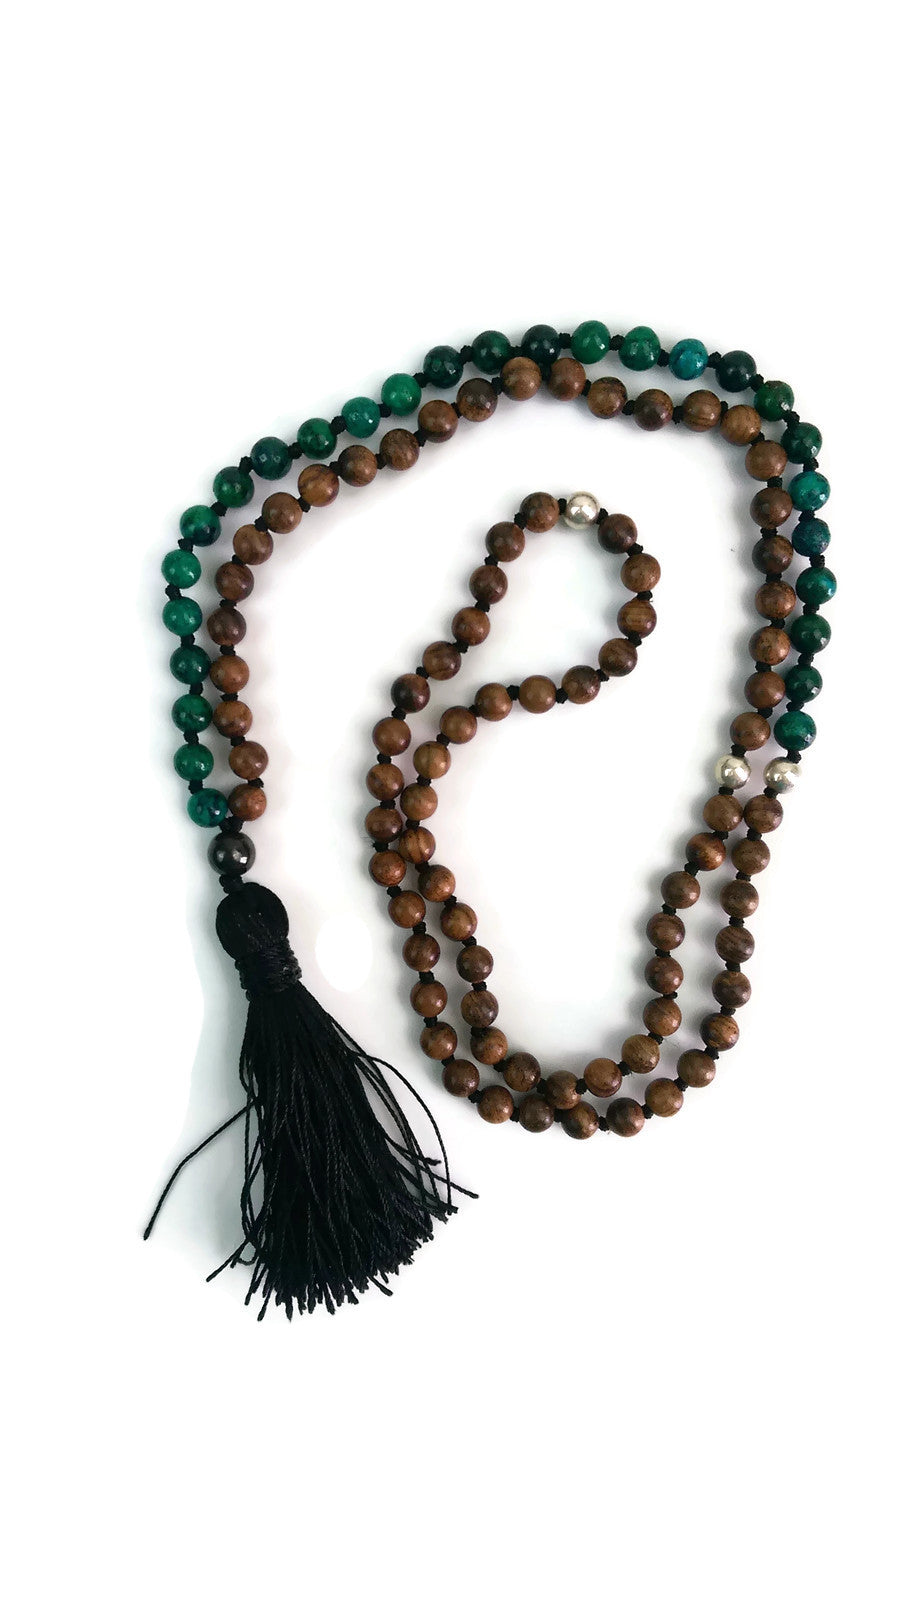 Balance Collection Black Pear Wood & Green Phoenix Stone Traditional Knotted 108 Meditation Mala Necklace Heart Chakra